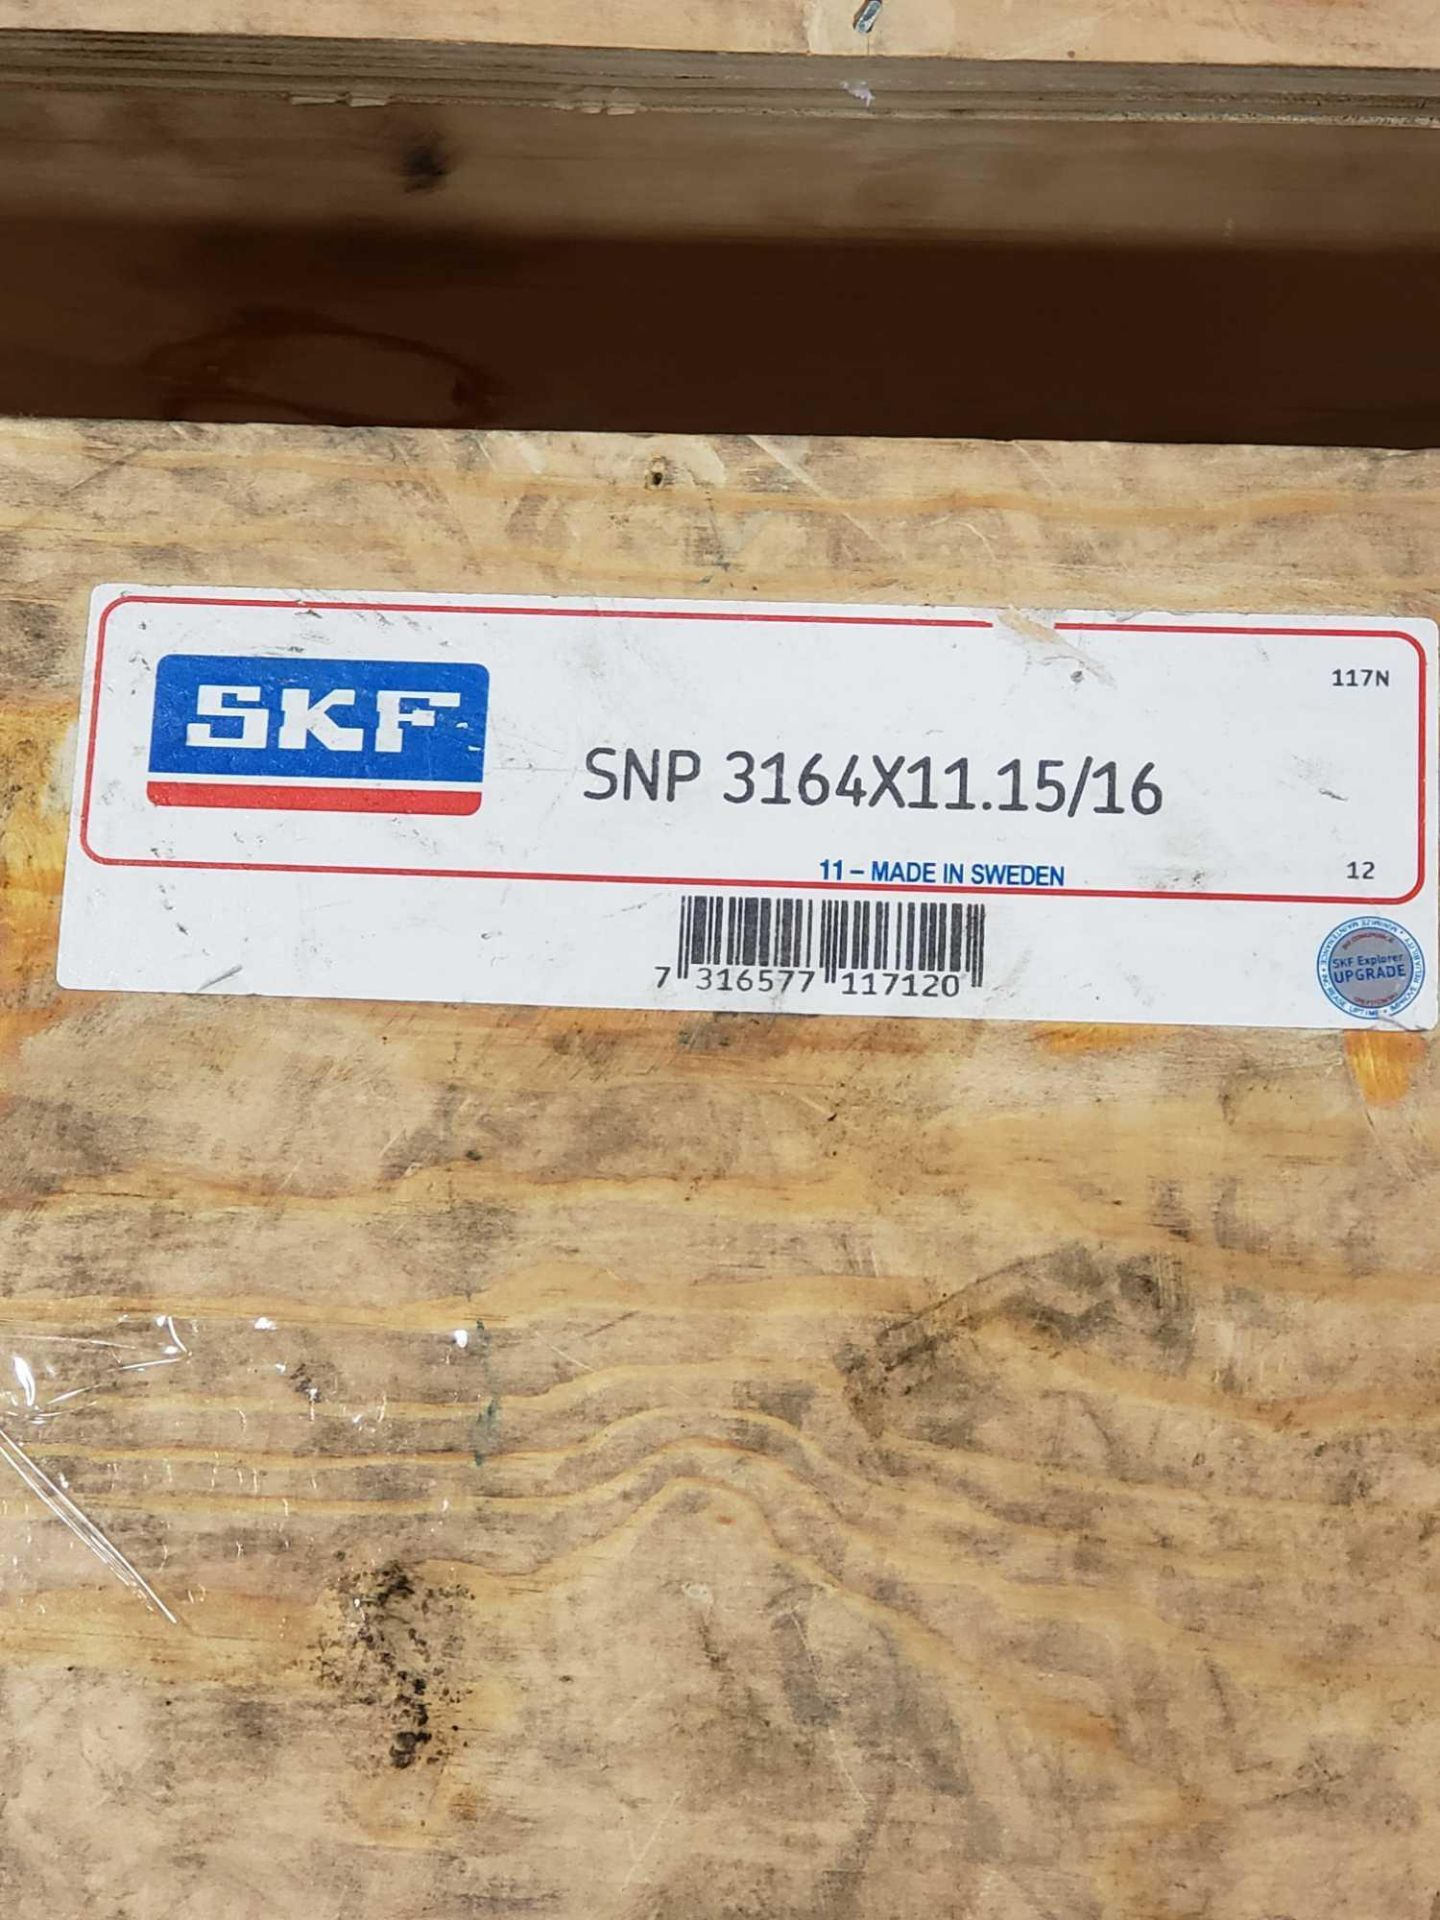 Lot 26 - SKF bearing adapter part number SNP3164X11.15/16. New in crate.